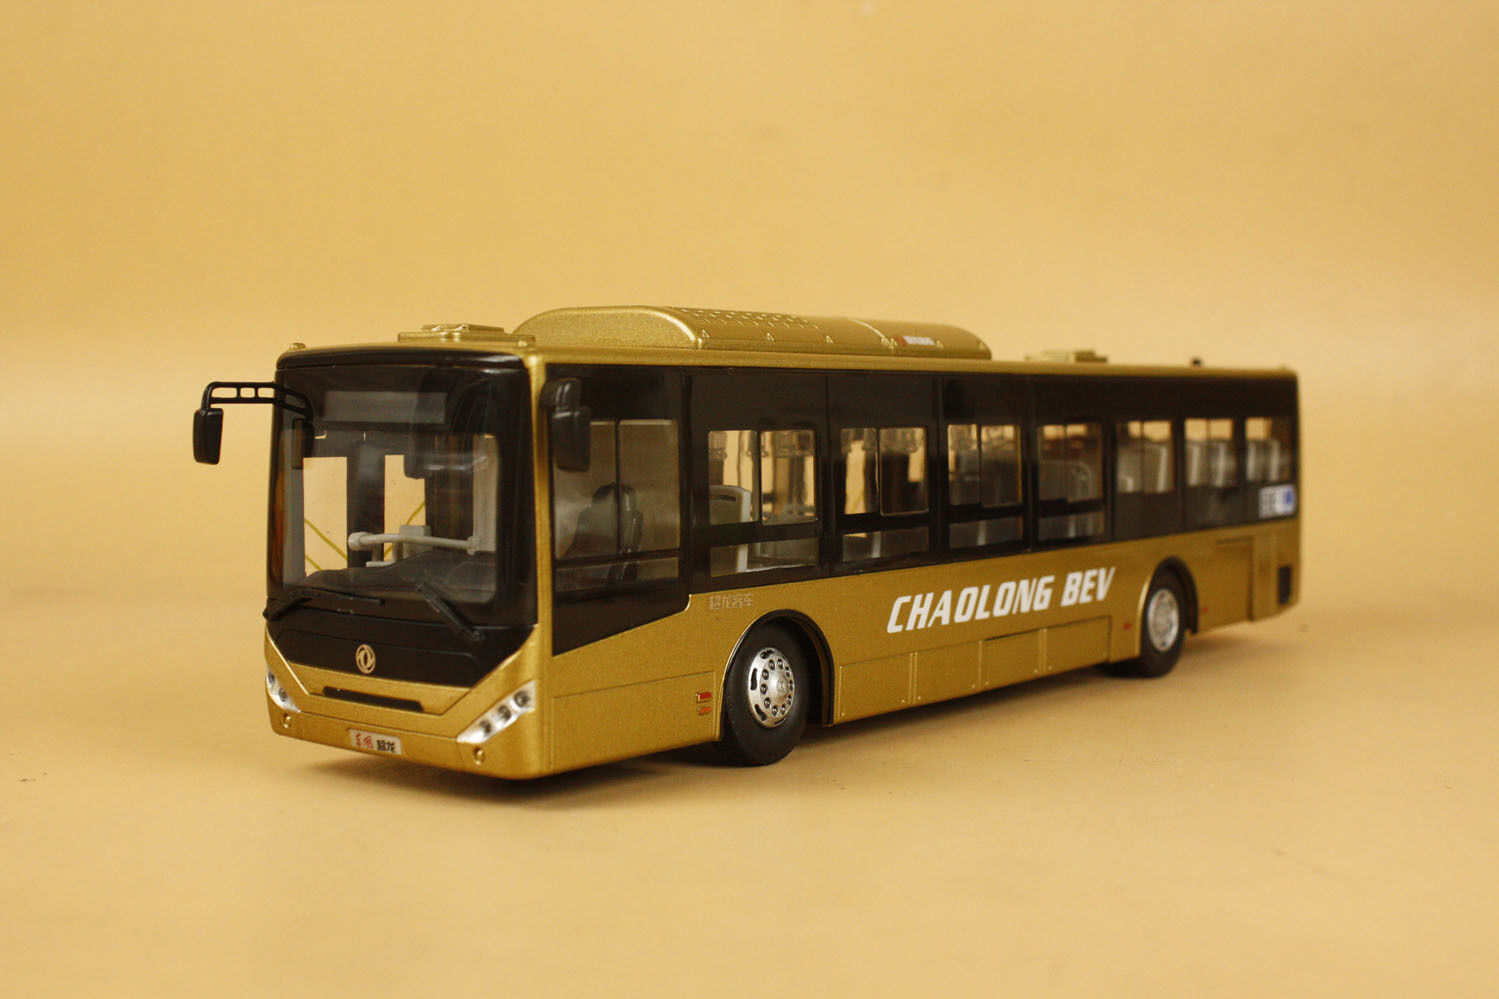 1   42 dongfeng chaolong bev - bus ein diecast modell Gold (acryl transpare box)